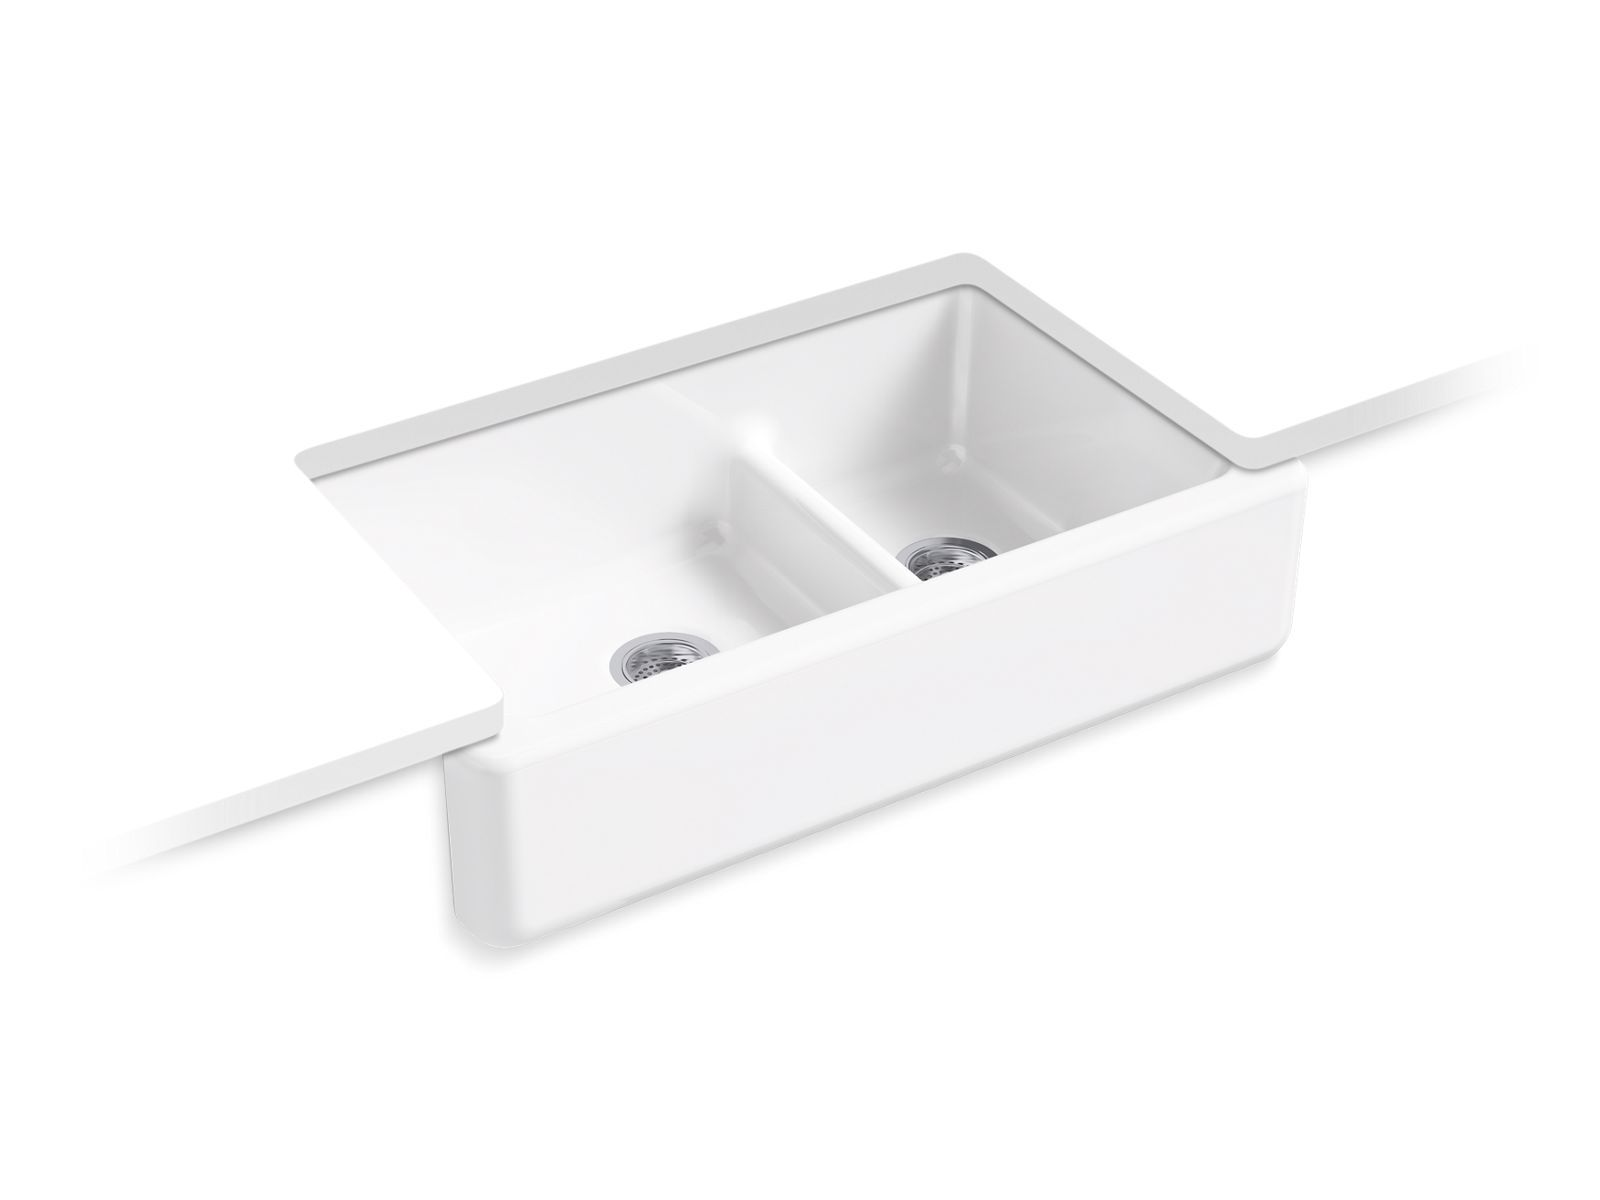 "Whitehaven Self-Trimming 35 11/16"" x 21 9/16"" Under-Mount Large/Medium Double-Bowl Kitchen Sink with Tall Apron"